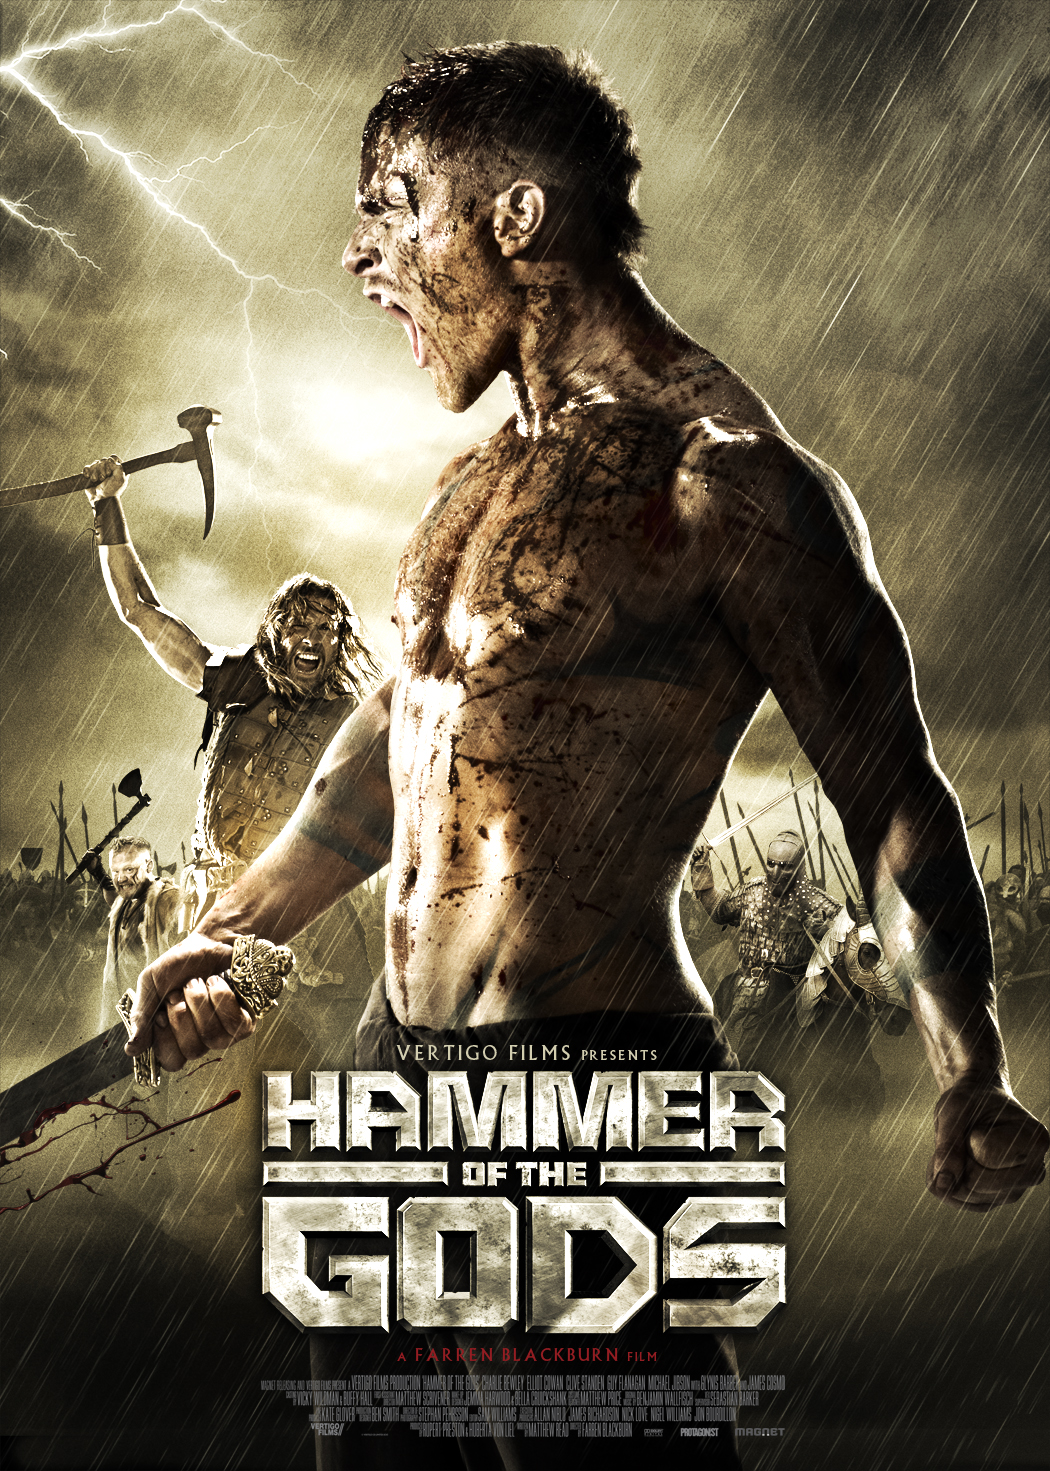 HOTG 1SHEET final Red Band Trailer of Hammer of the Gods Premieres on IGN